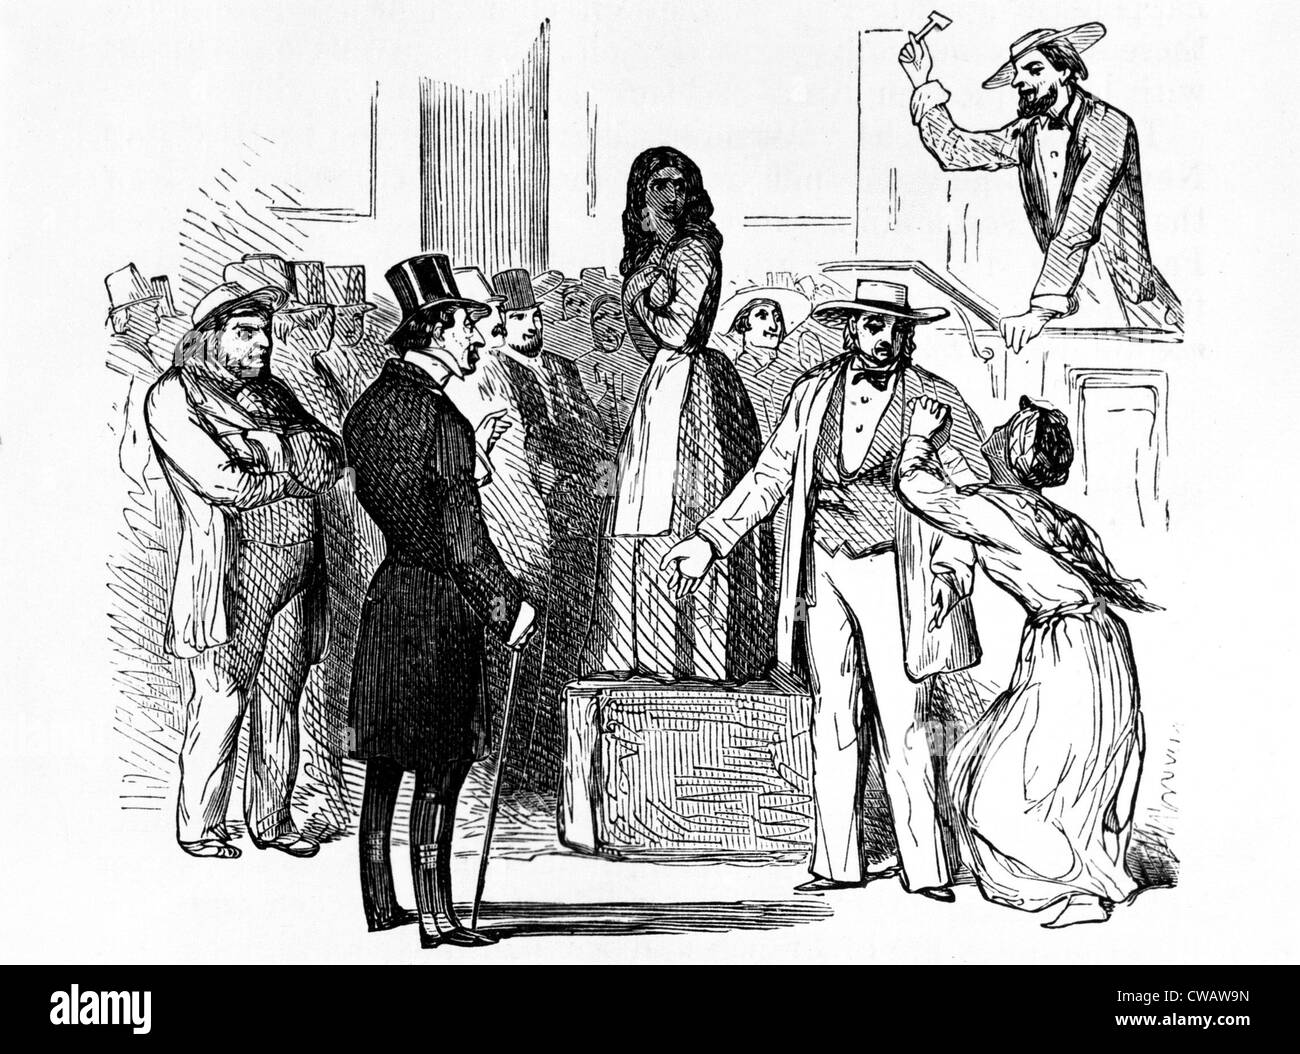 Slave auction in the American South, early 1800s. Courtesy: CSU Archives / Everett Collection Stock Photo